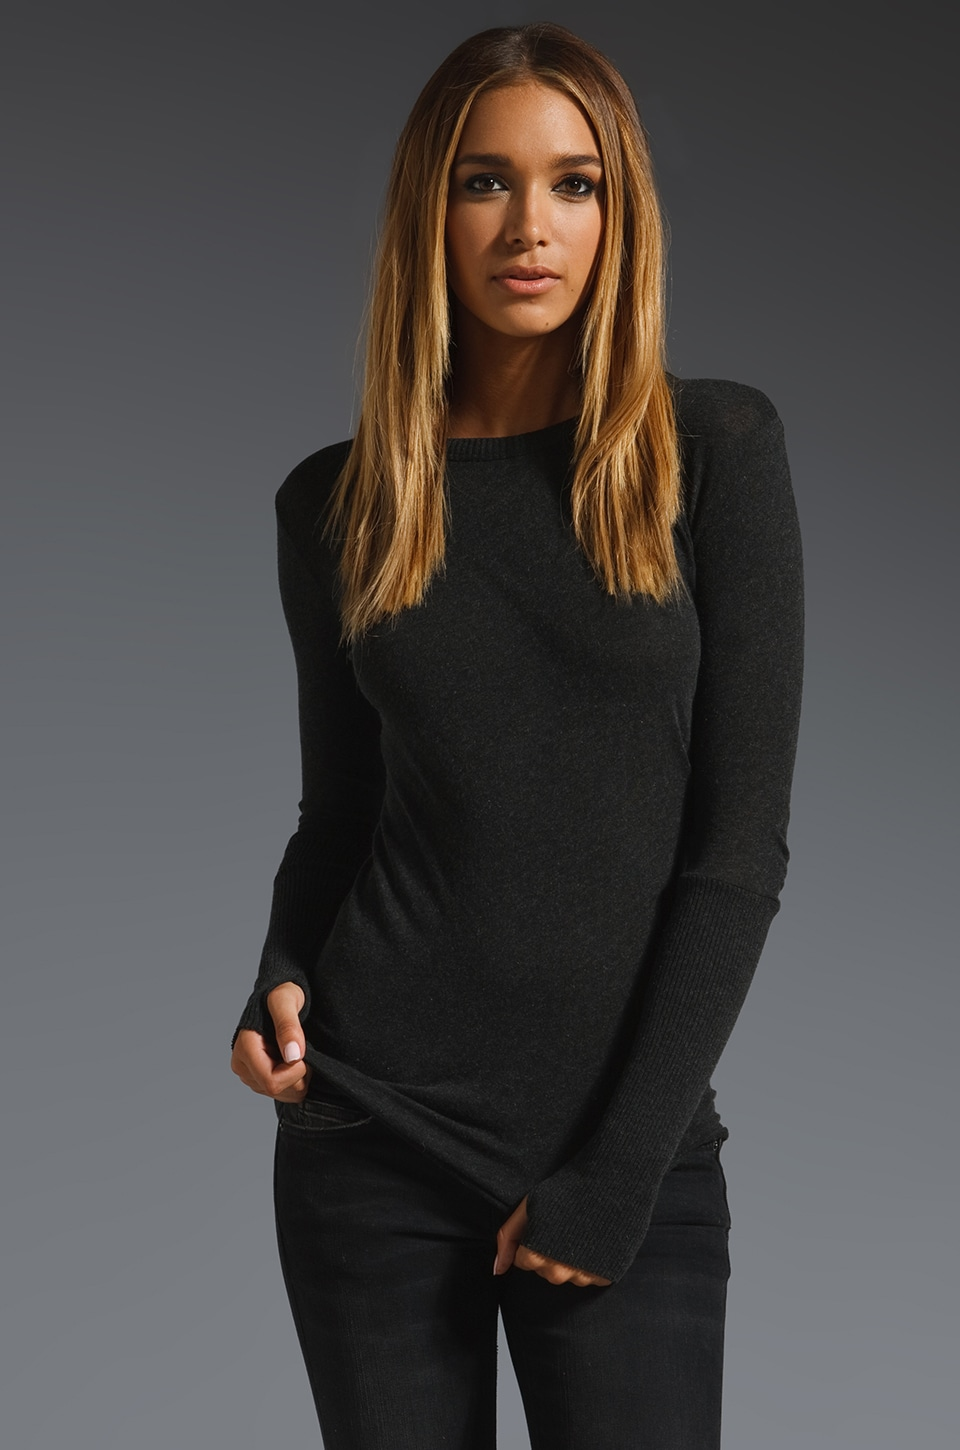 Enza Costa Cashmere Fitted Cuffed Crew Neck Sweater in Charcoal